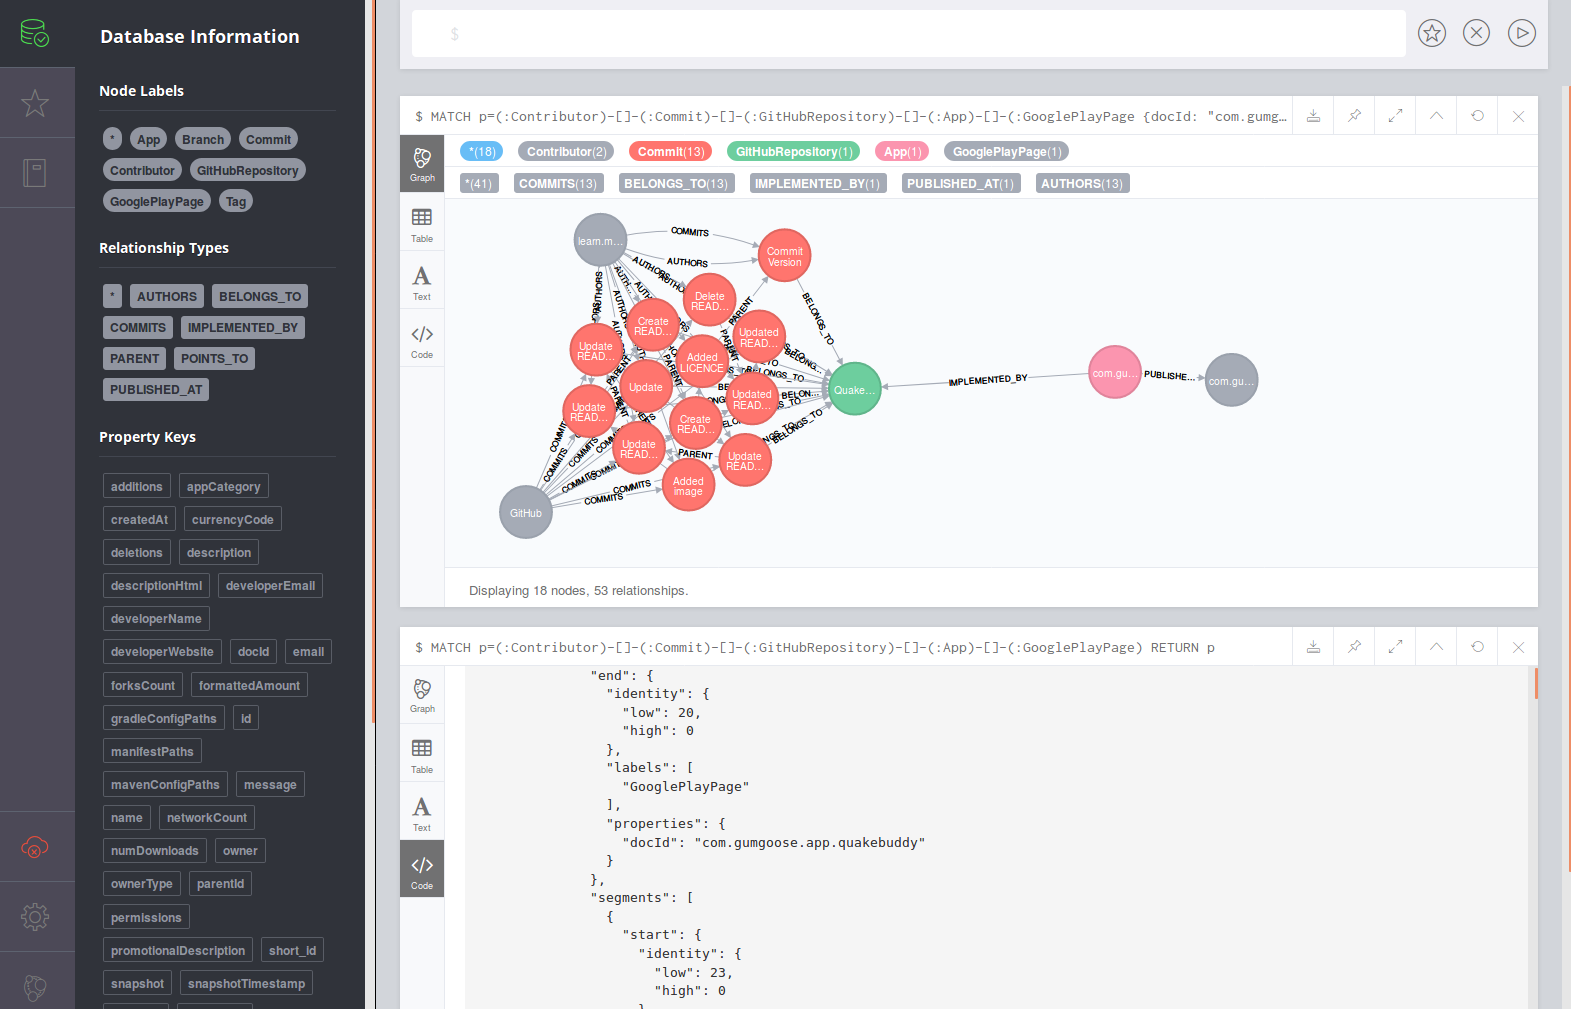 Neo4j Web Interface